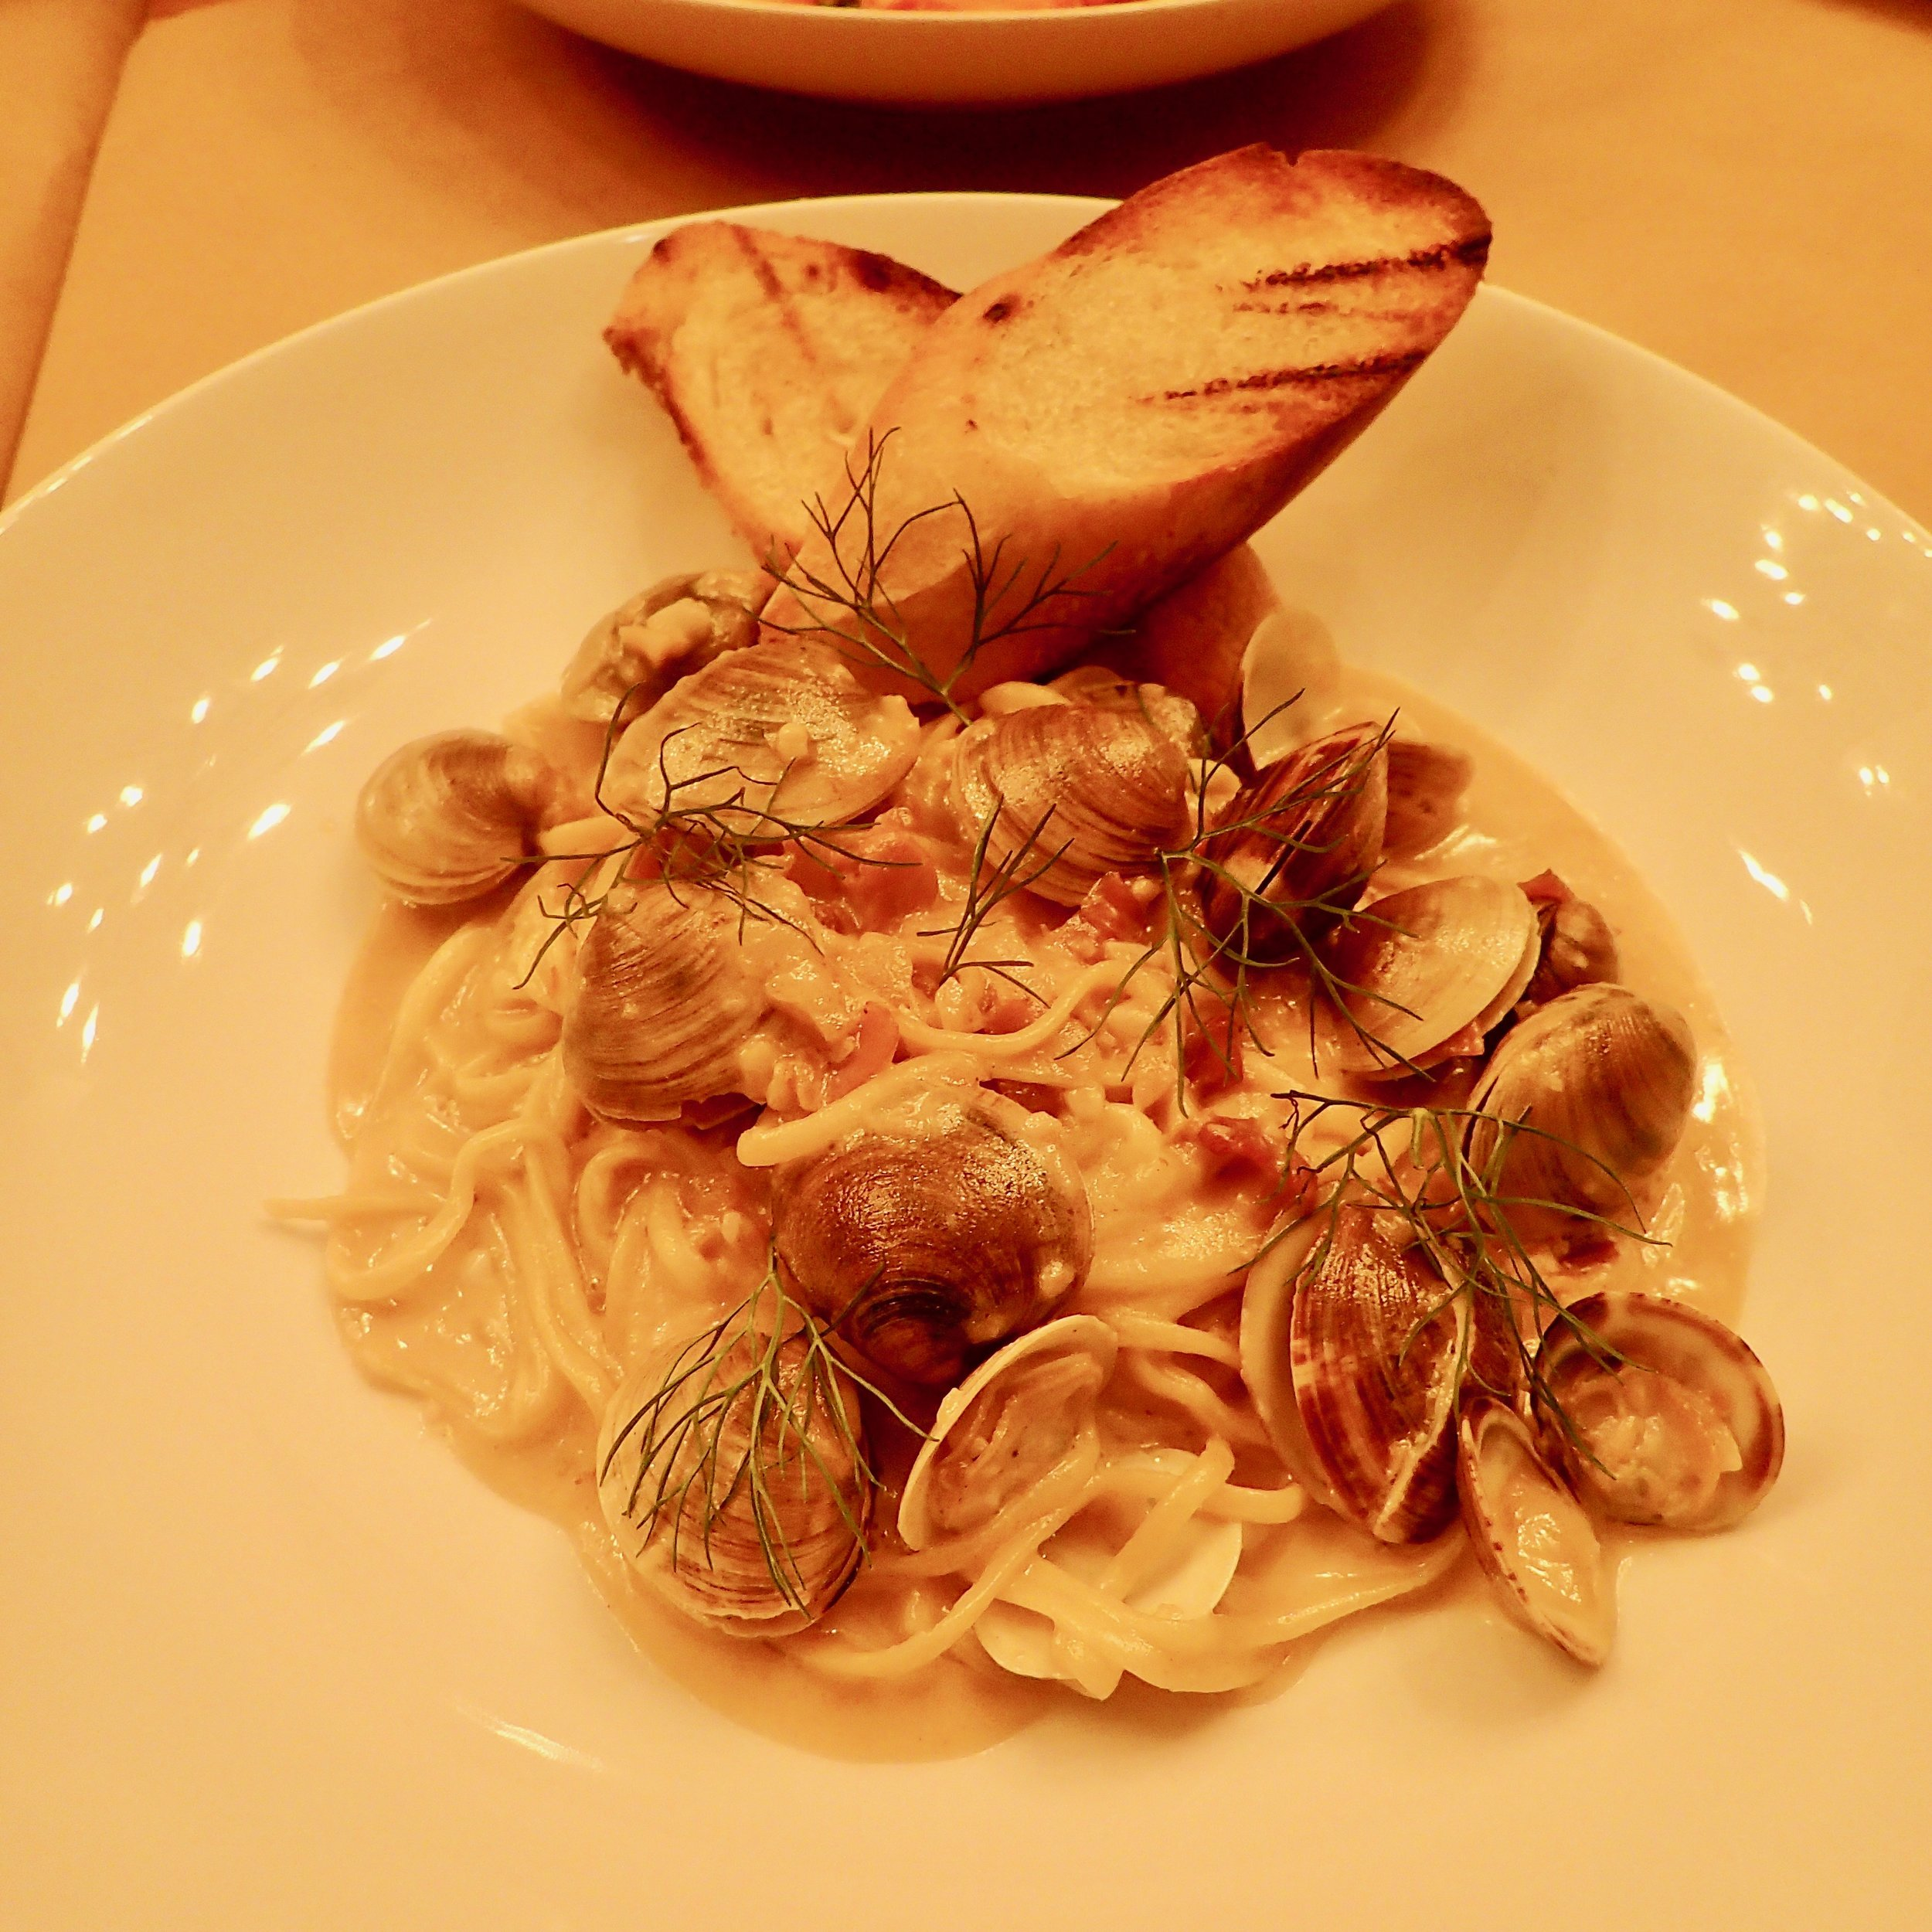 Housemade linguine with smallneck clams, pancetta, fennel and fronds in a lemon-white wine sauce at Sette Orlando.